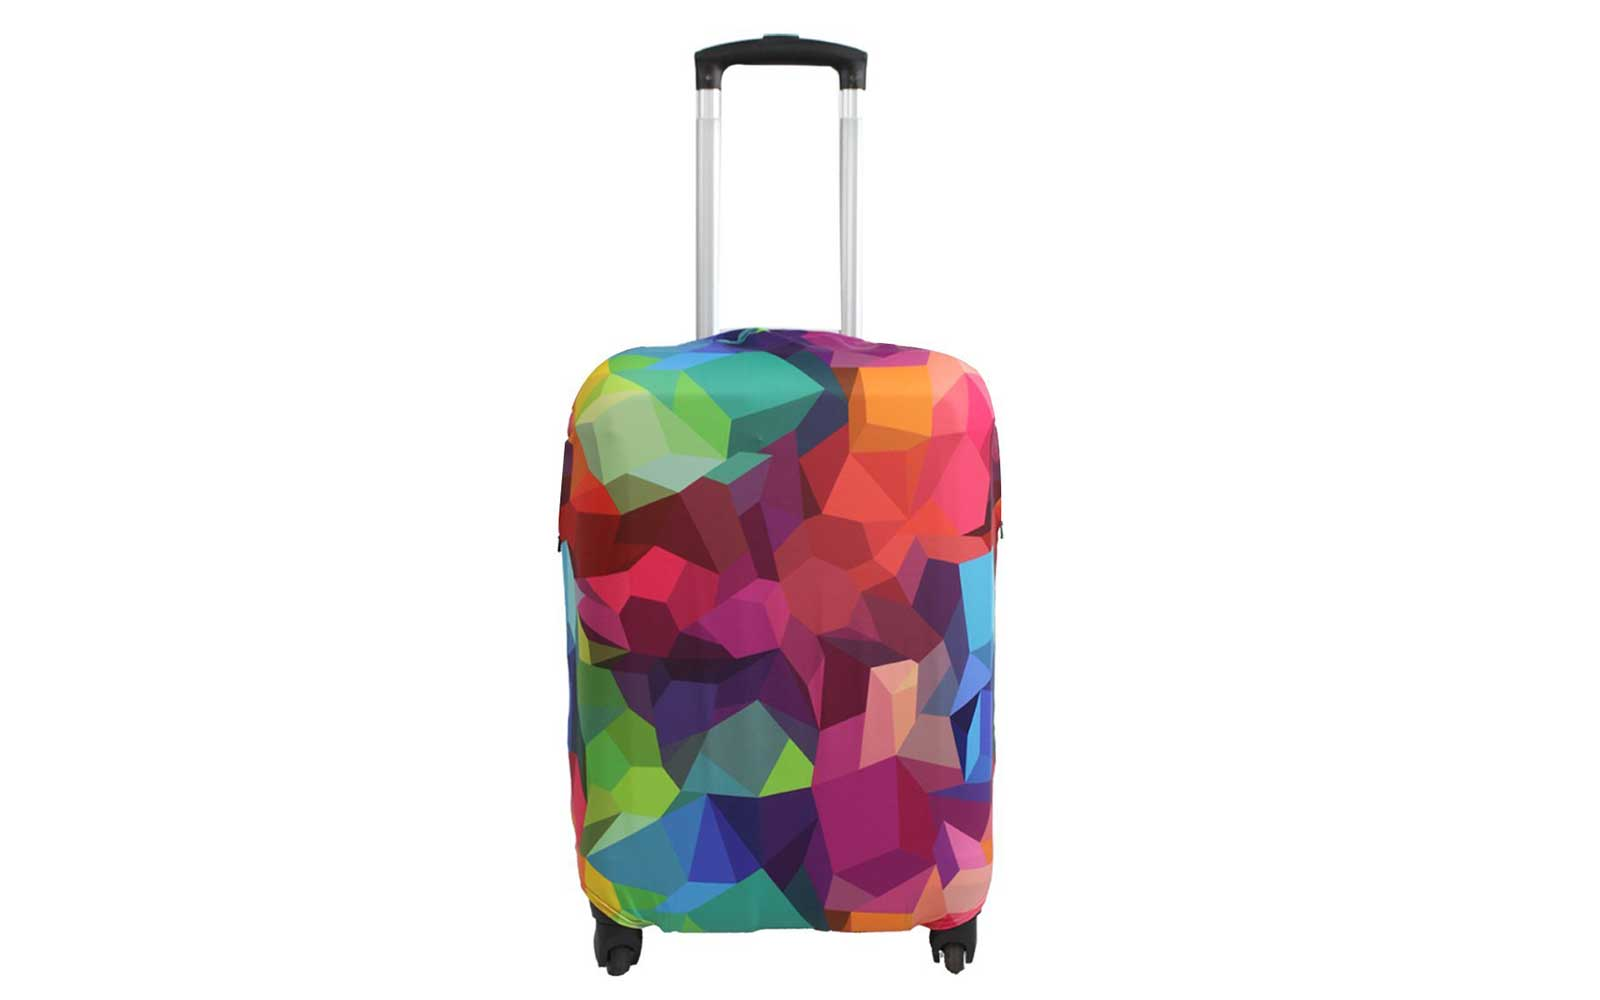 Explore Land Travel Luggage Cover